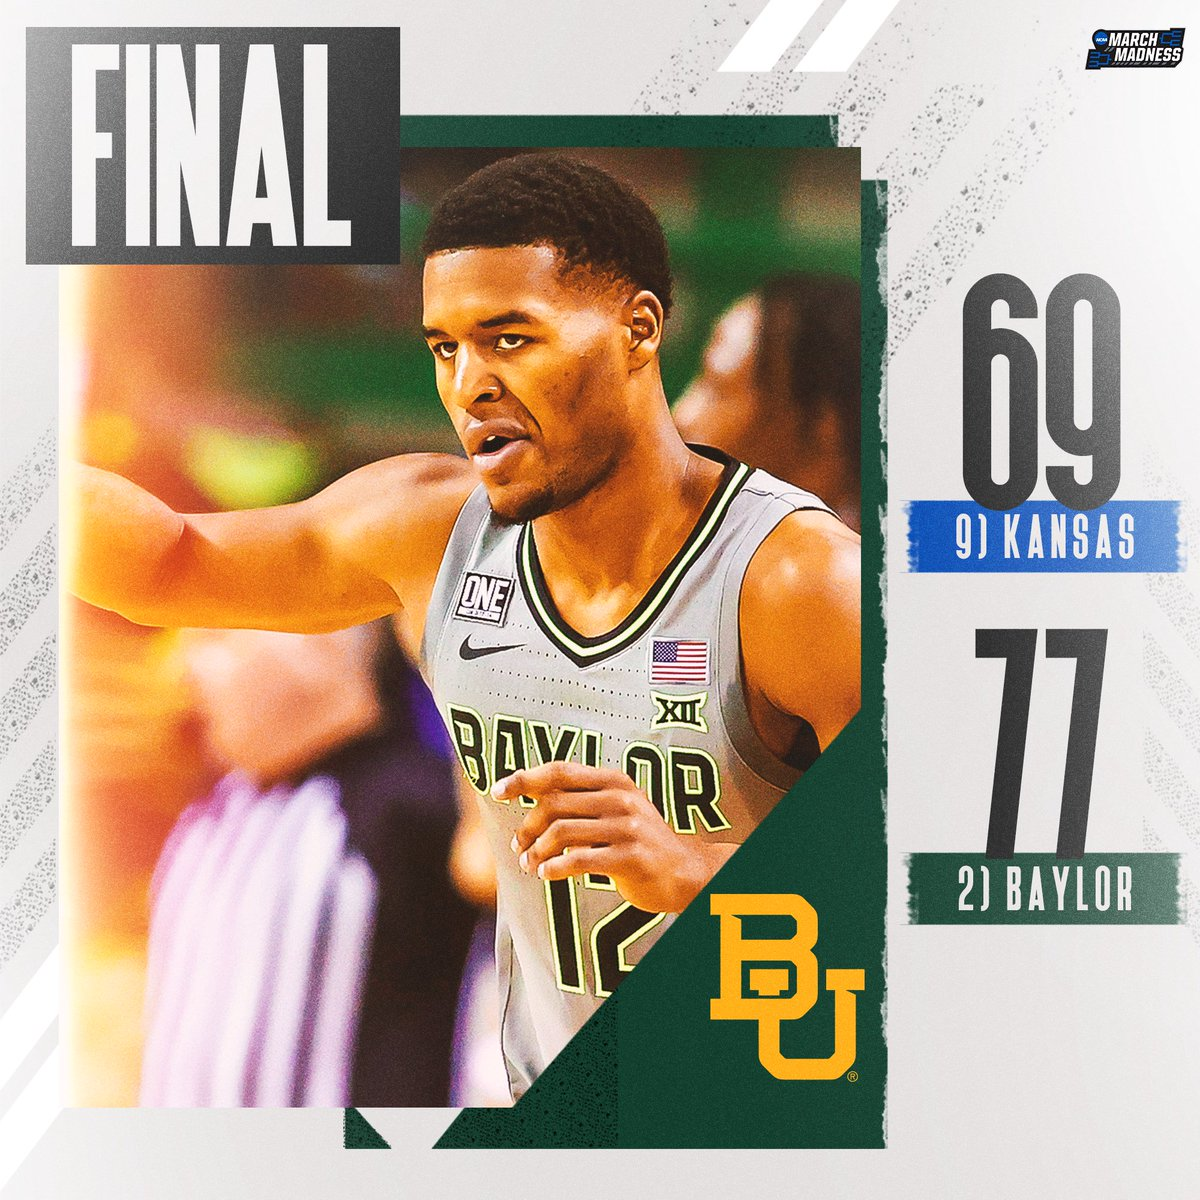 @marchmadness's photo on Baylor